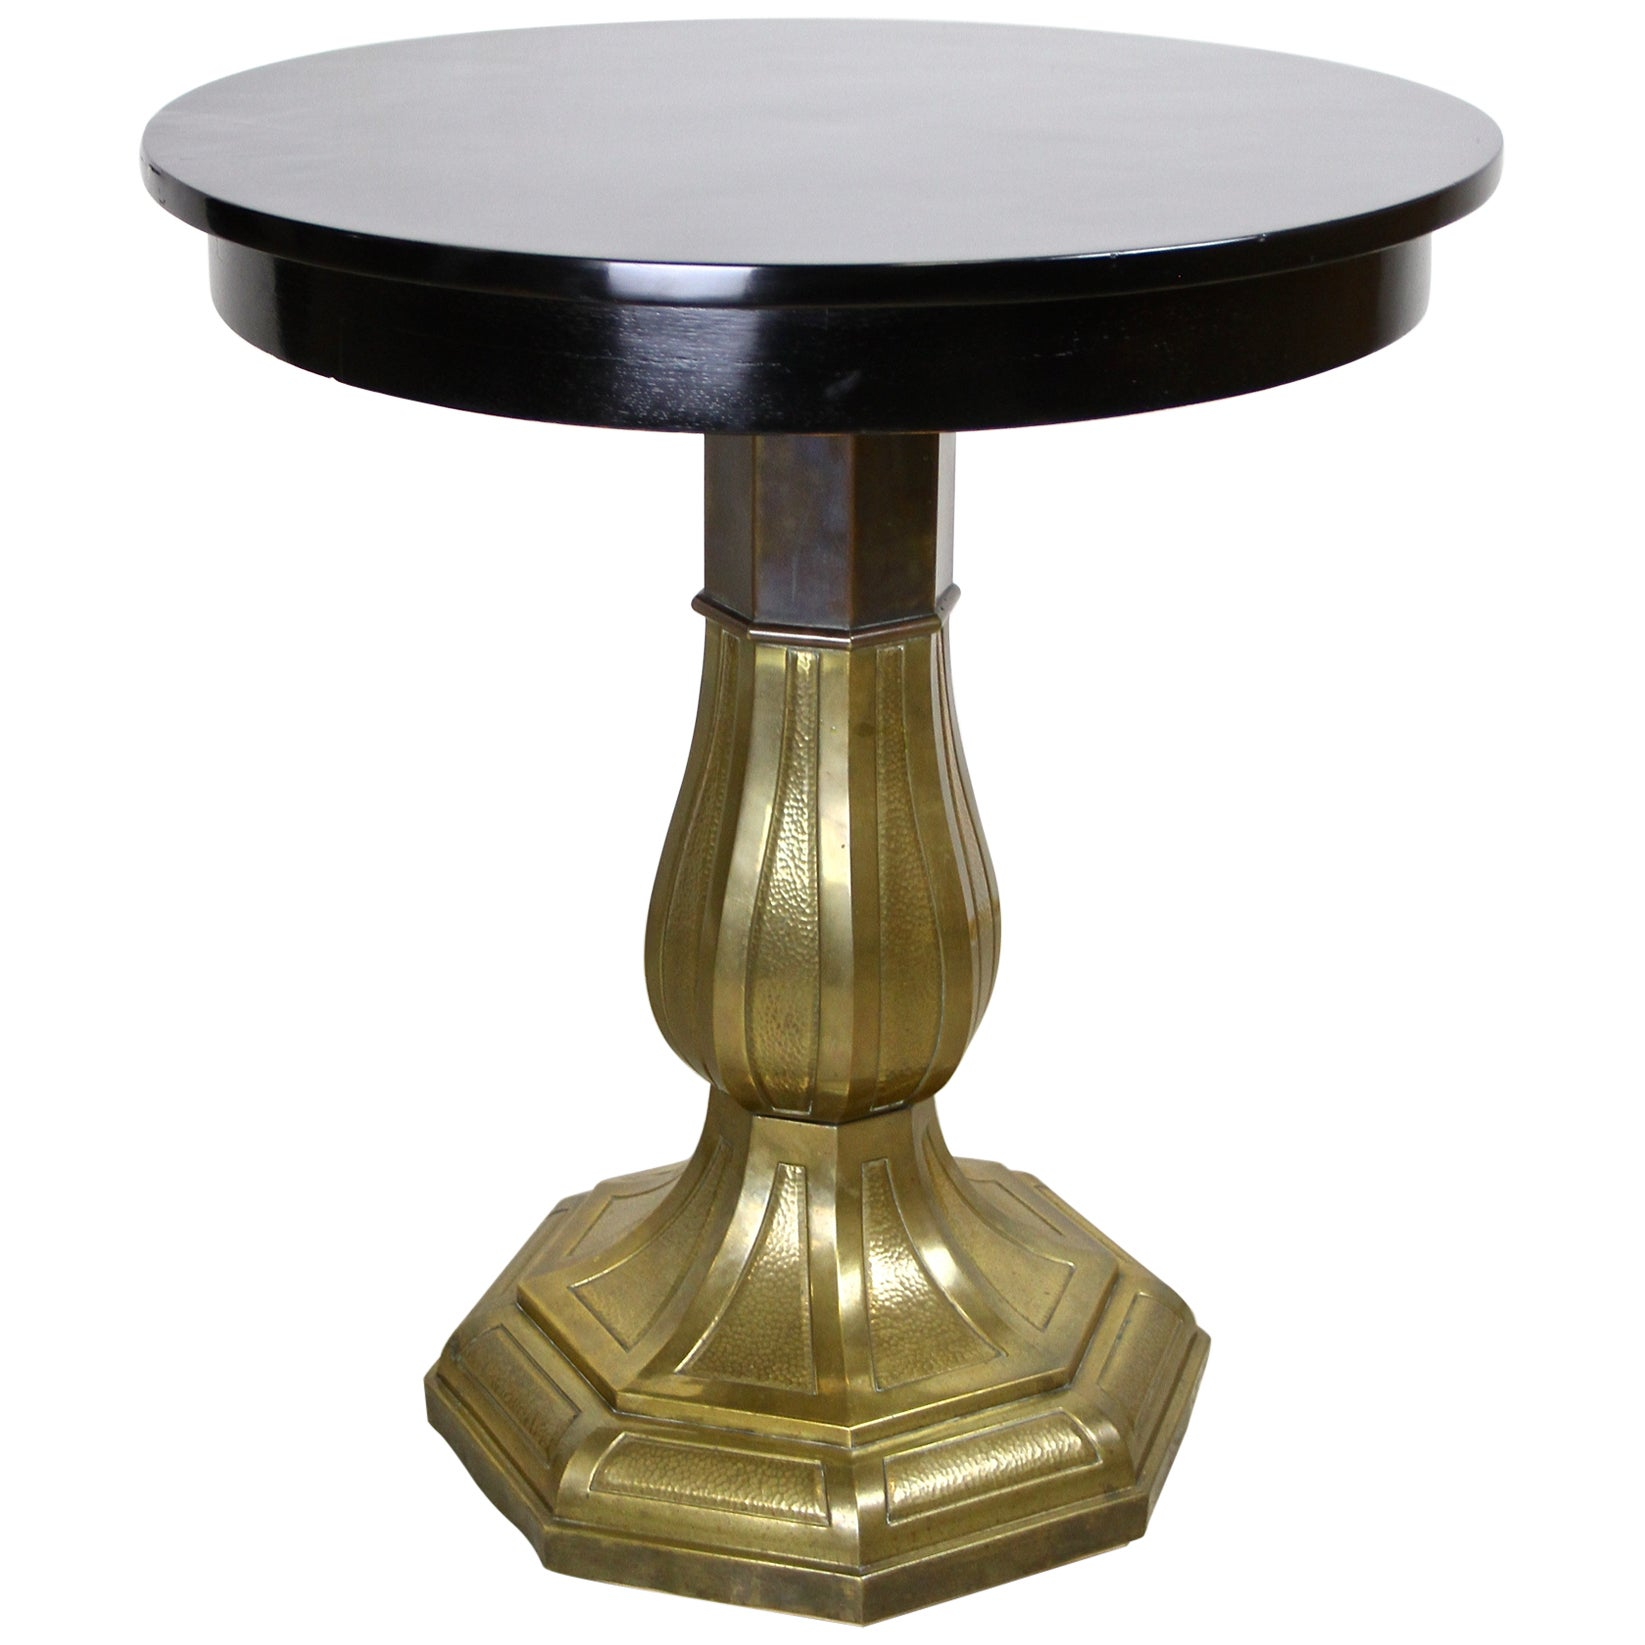 Art Nouveau Coffee/ Side Table with Brass Base, Austria, circa 1910